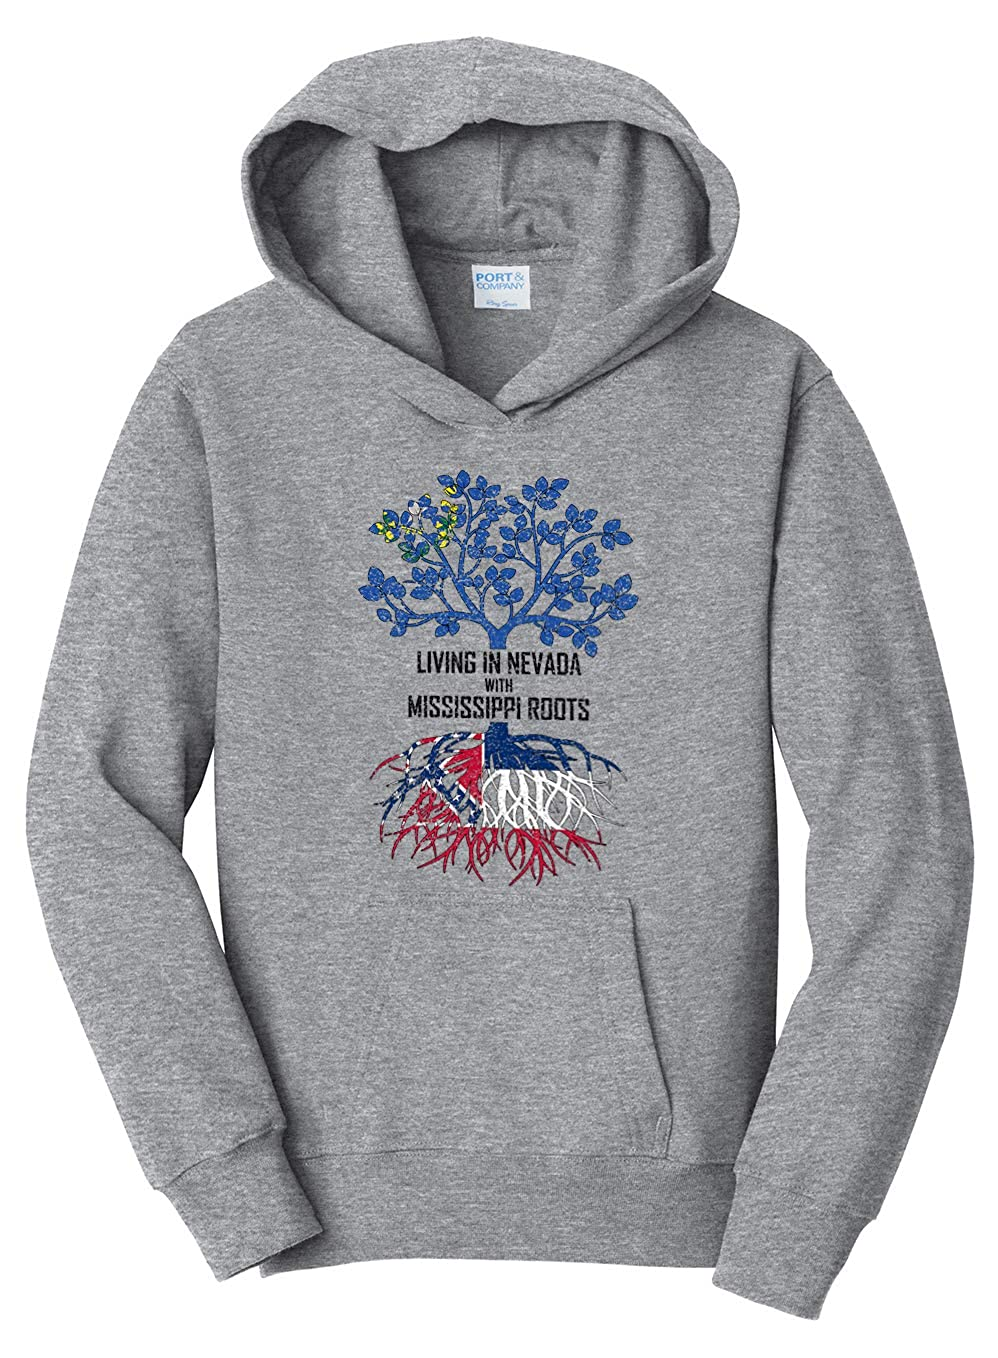 Tenacitee Girls Living in Nevada with Mississippi Roots Hooded Sweatshirt